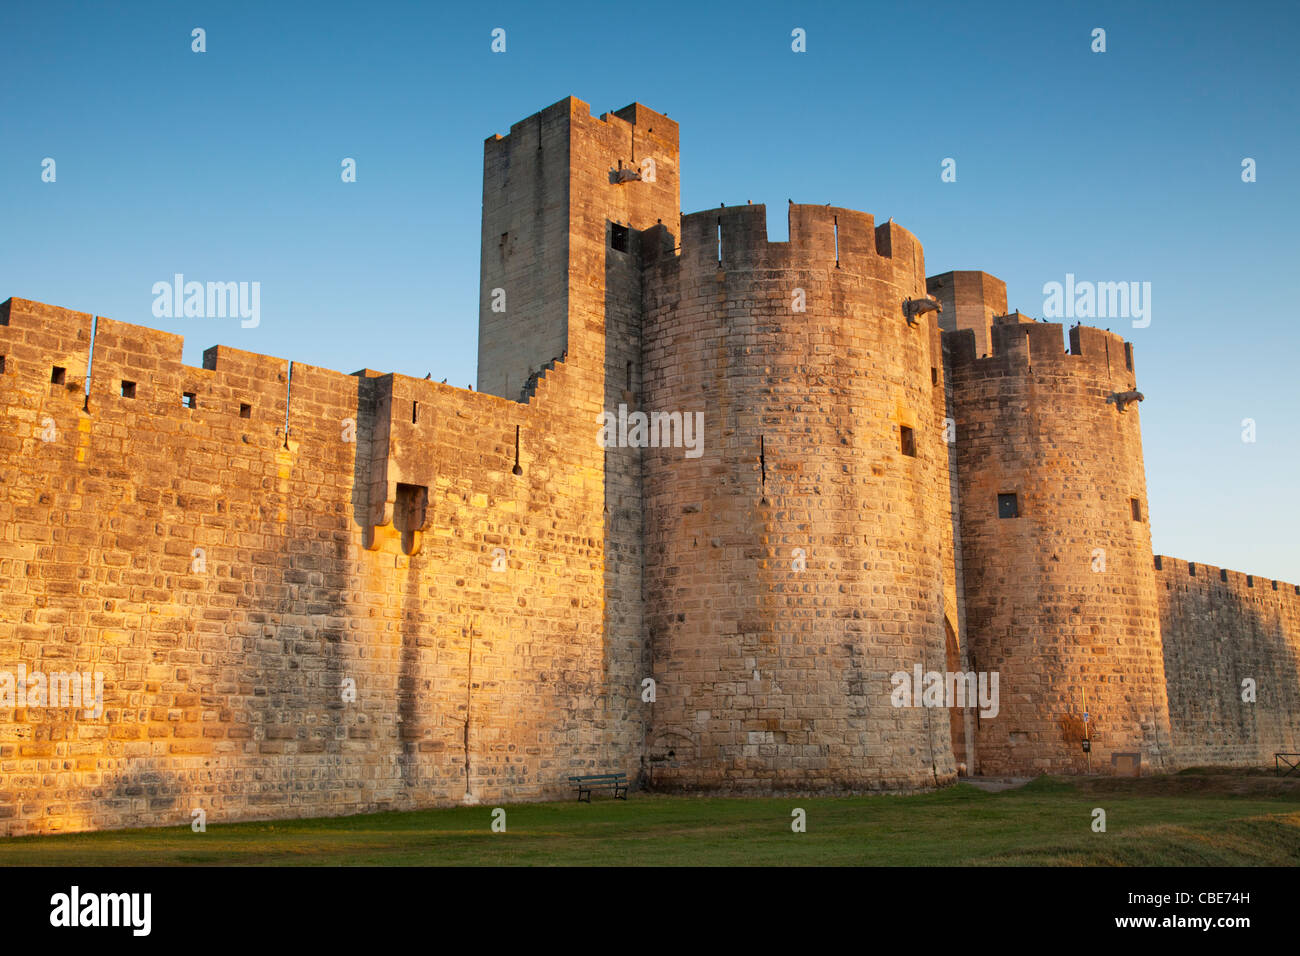 The ramparts and east gate of Aigues-Mortes, Languedoc Roussillon,France, in early morning light. - Stock Image